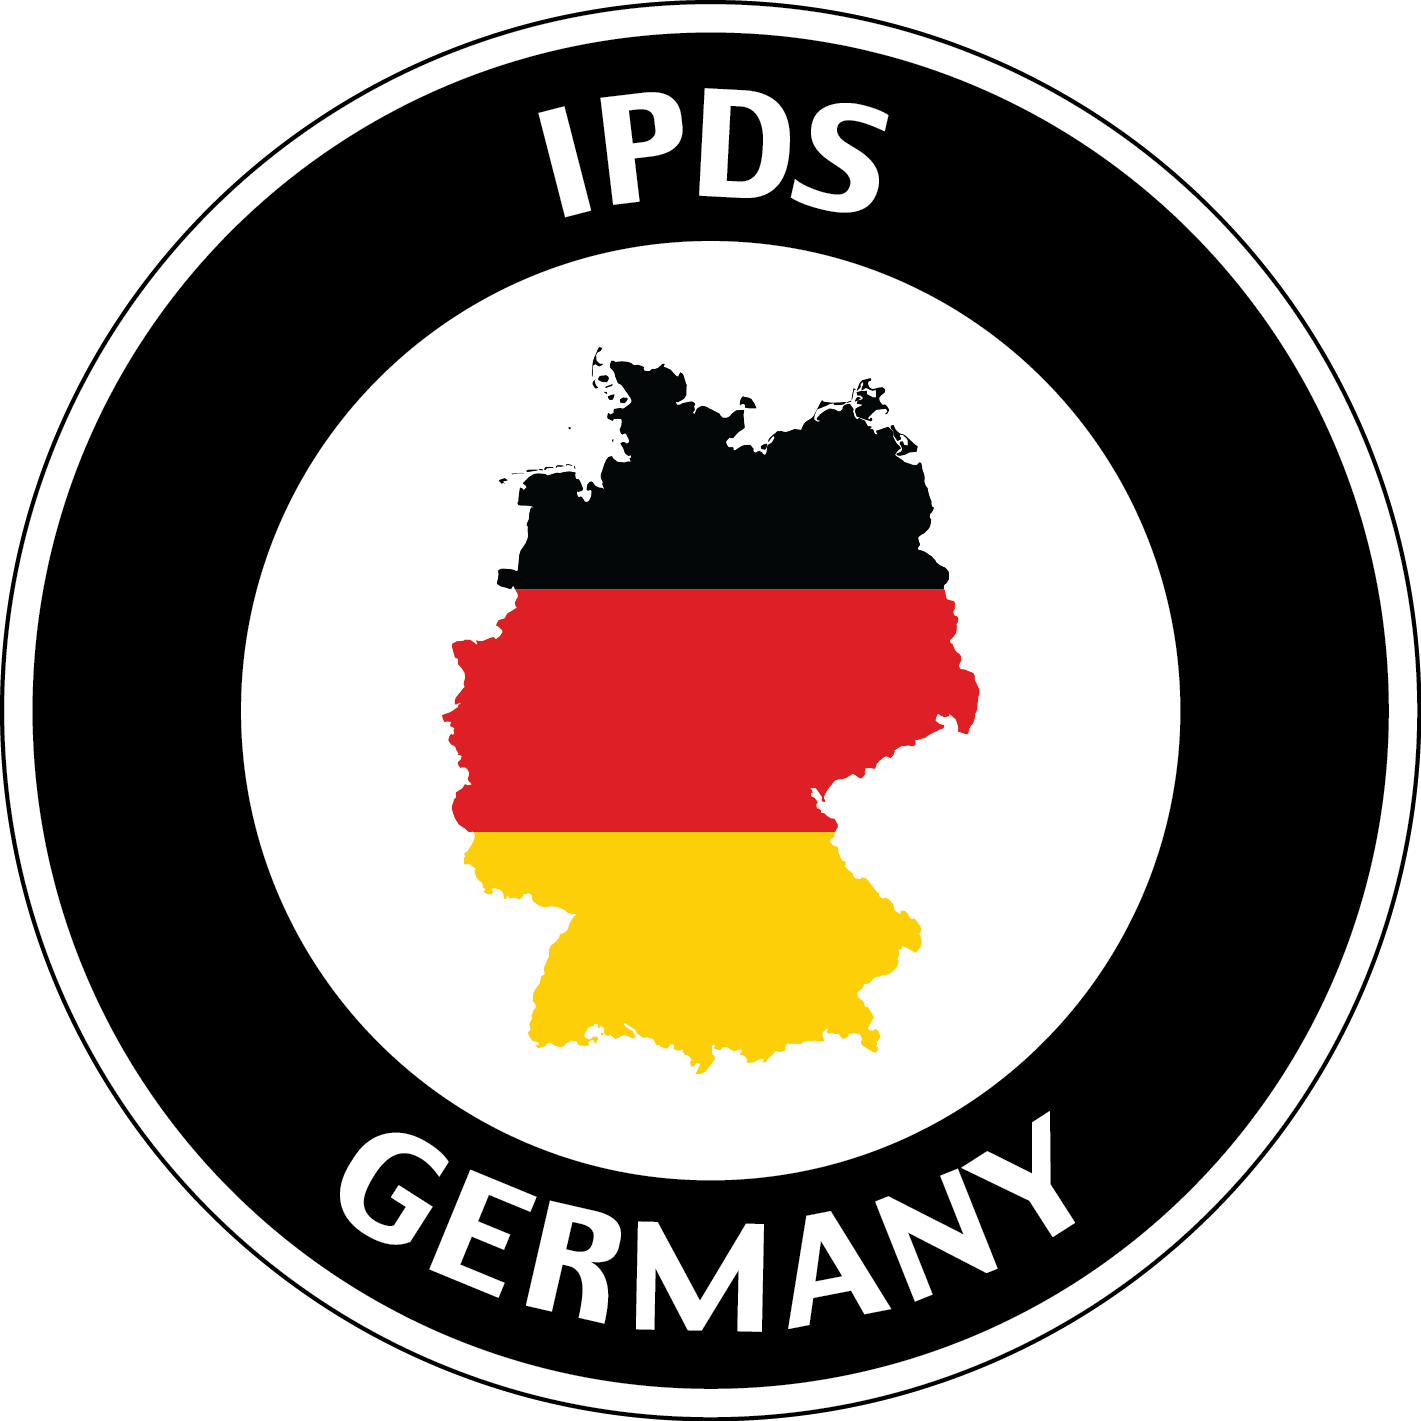 IPDS Germany icon with country and flag